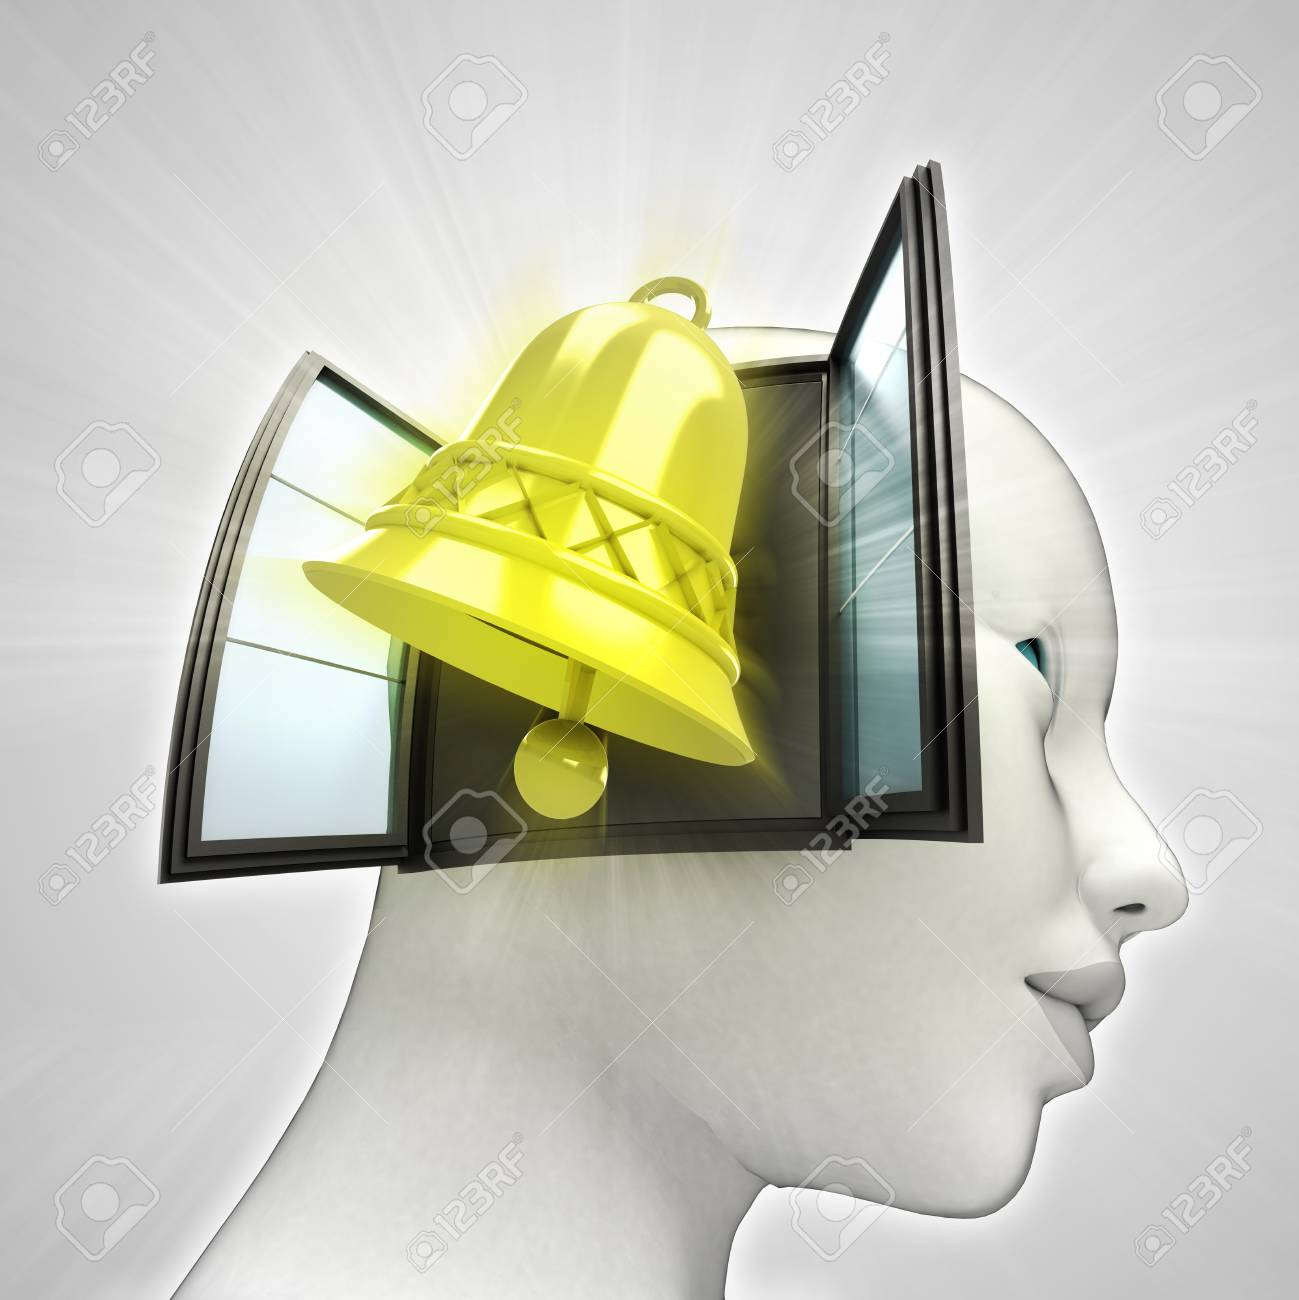 golden bell alarm coming out or in human head through window concept illustration Stock Photo - 22908292